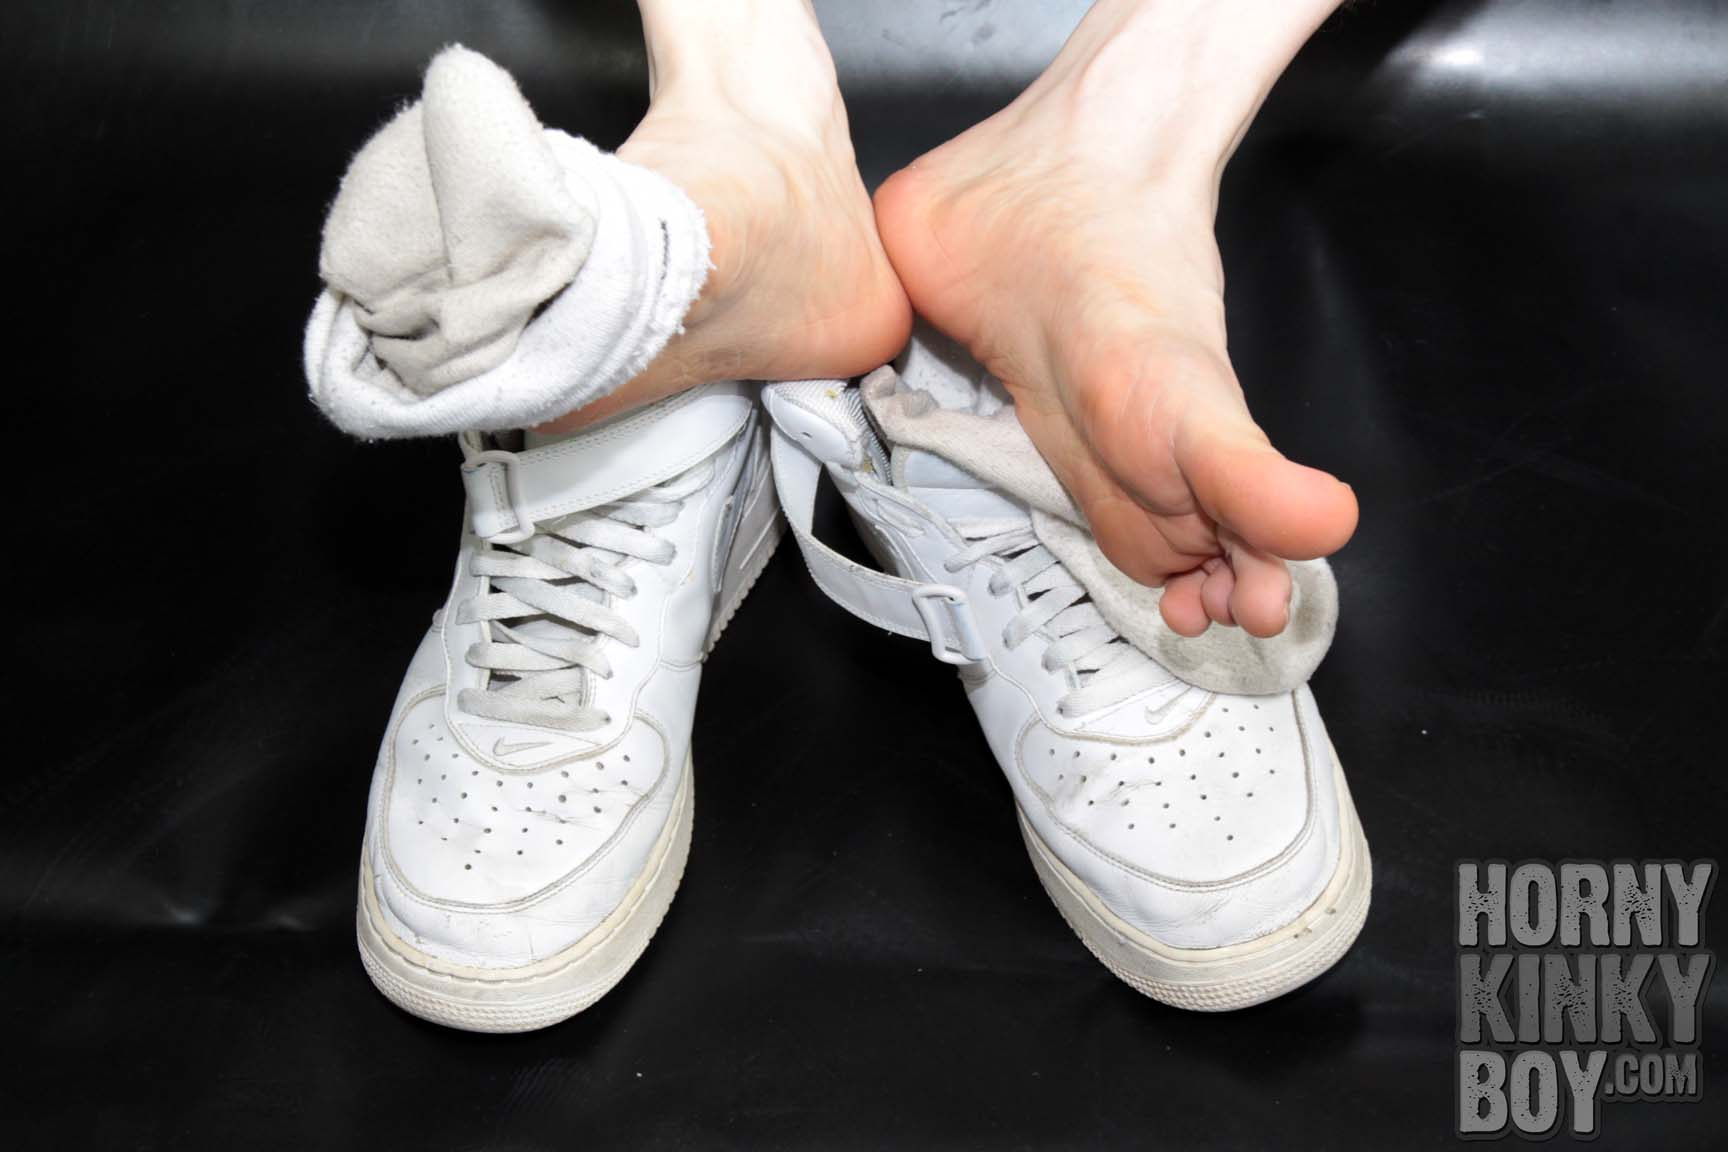 Smelly Sneaks, Sox, And Feet X